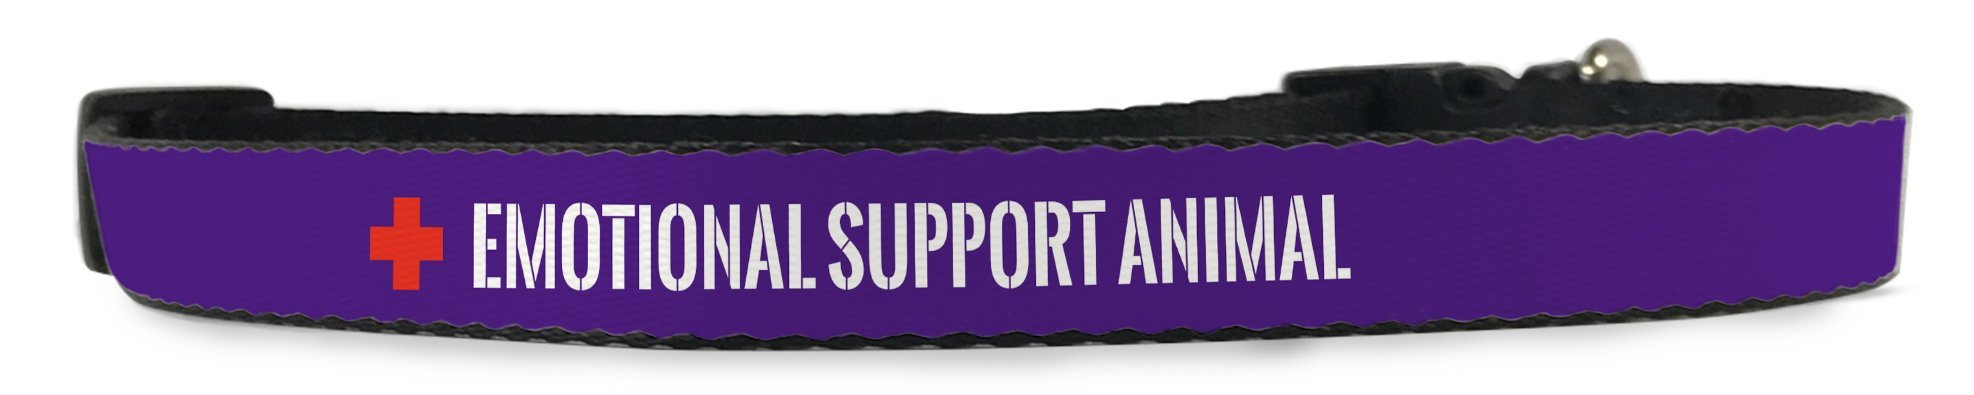 Emotional Support Animal (ESA) Dog Adjustable Dog Collar for Pet (Small to Medium Dogs 12'-16' inch) (Purple)